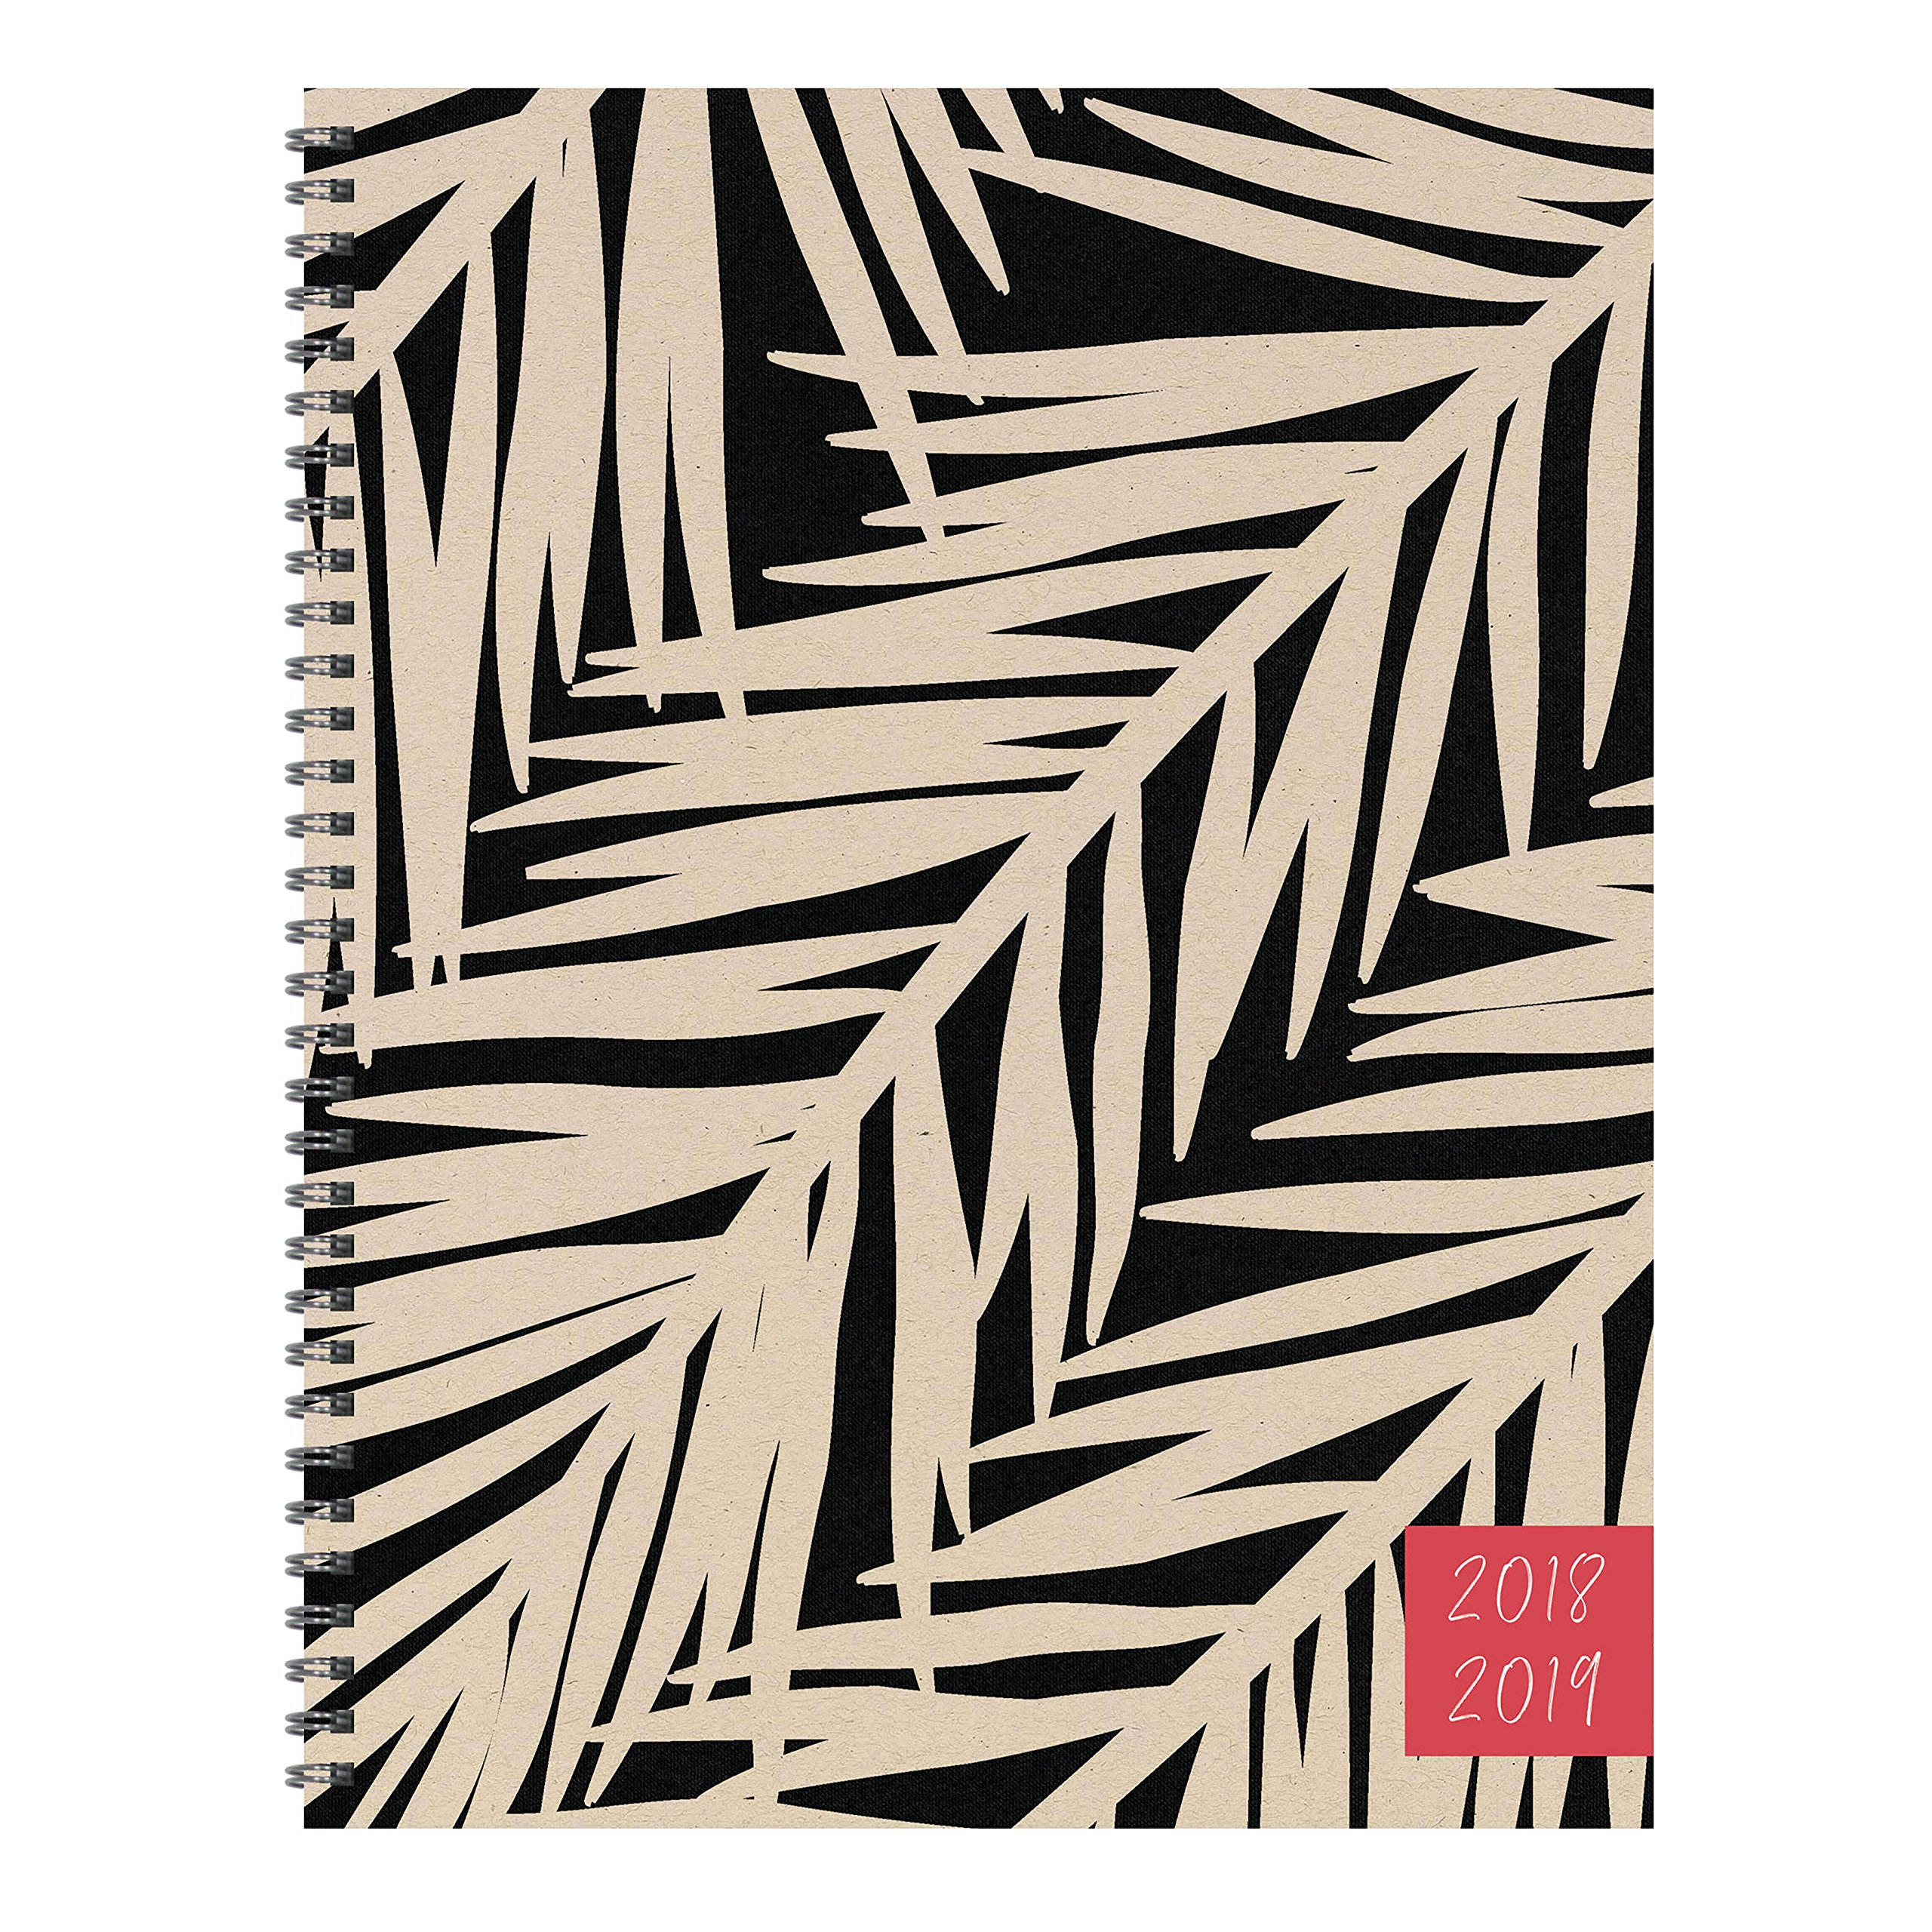 TF Publishing 19-9720A July 2018 - June 2019 Botanical Large Weekly Monthly Planner, 9 x 11'', Beige & Black